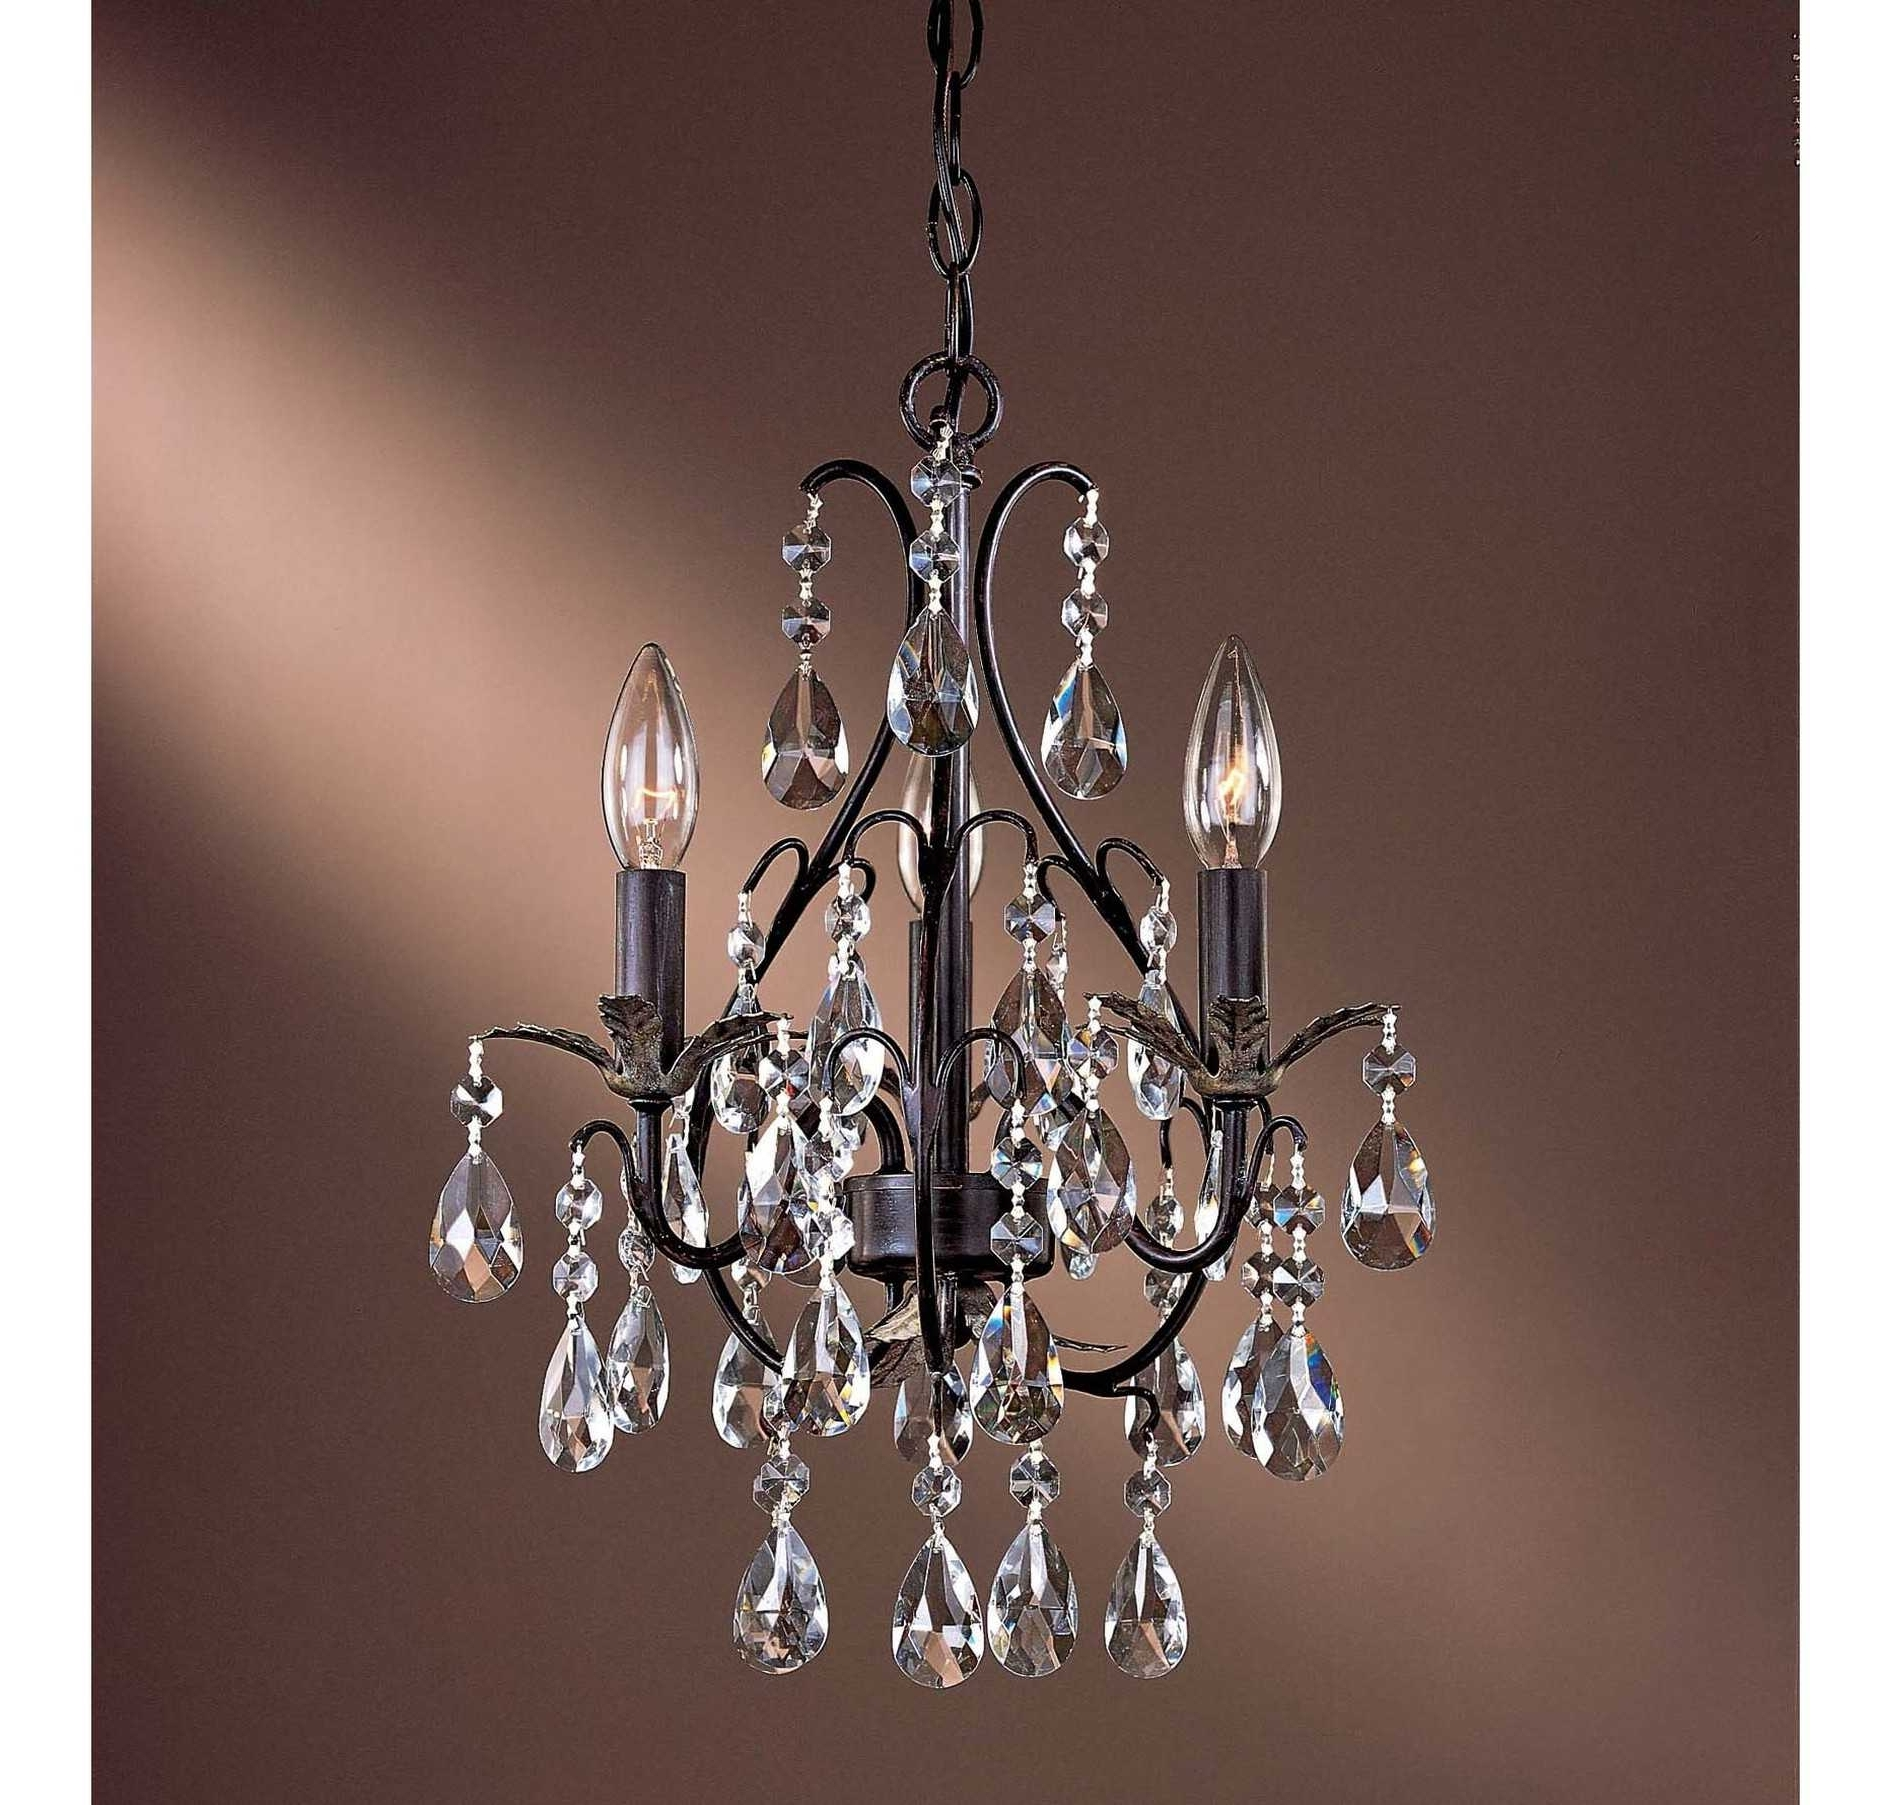 Stunning Mini Crystal Chandeliers For Bedrooms Trends With Small Regarding 2018 Mini Crystal Chandeliers (View 19 of 20)